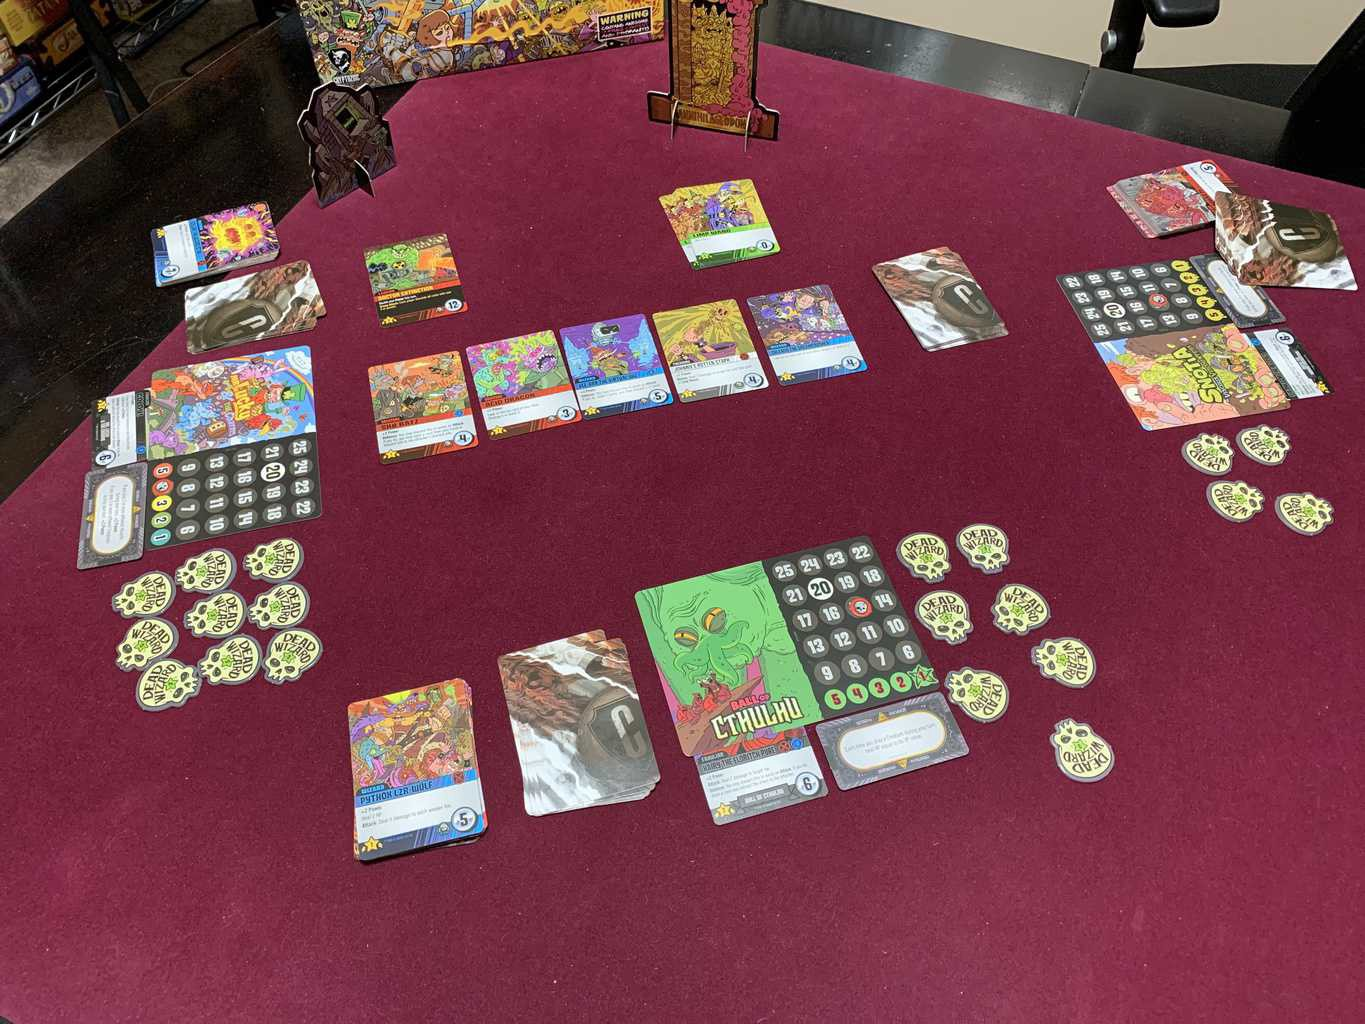 Epic Spell Wars of the Battle Wizards: ANNIHILAGEDDON Deck-Building Game - Cryptozoic Entertainment - Review 4